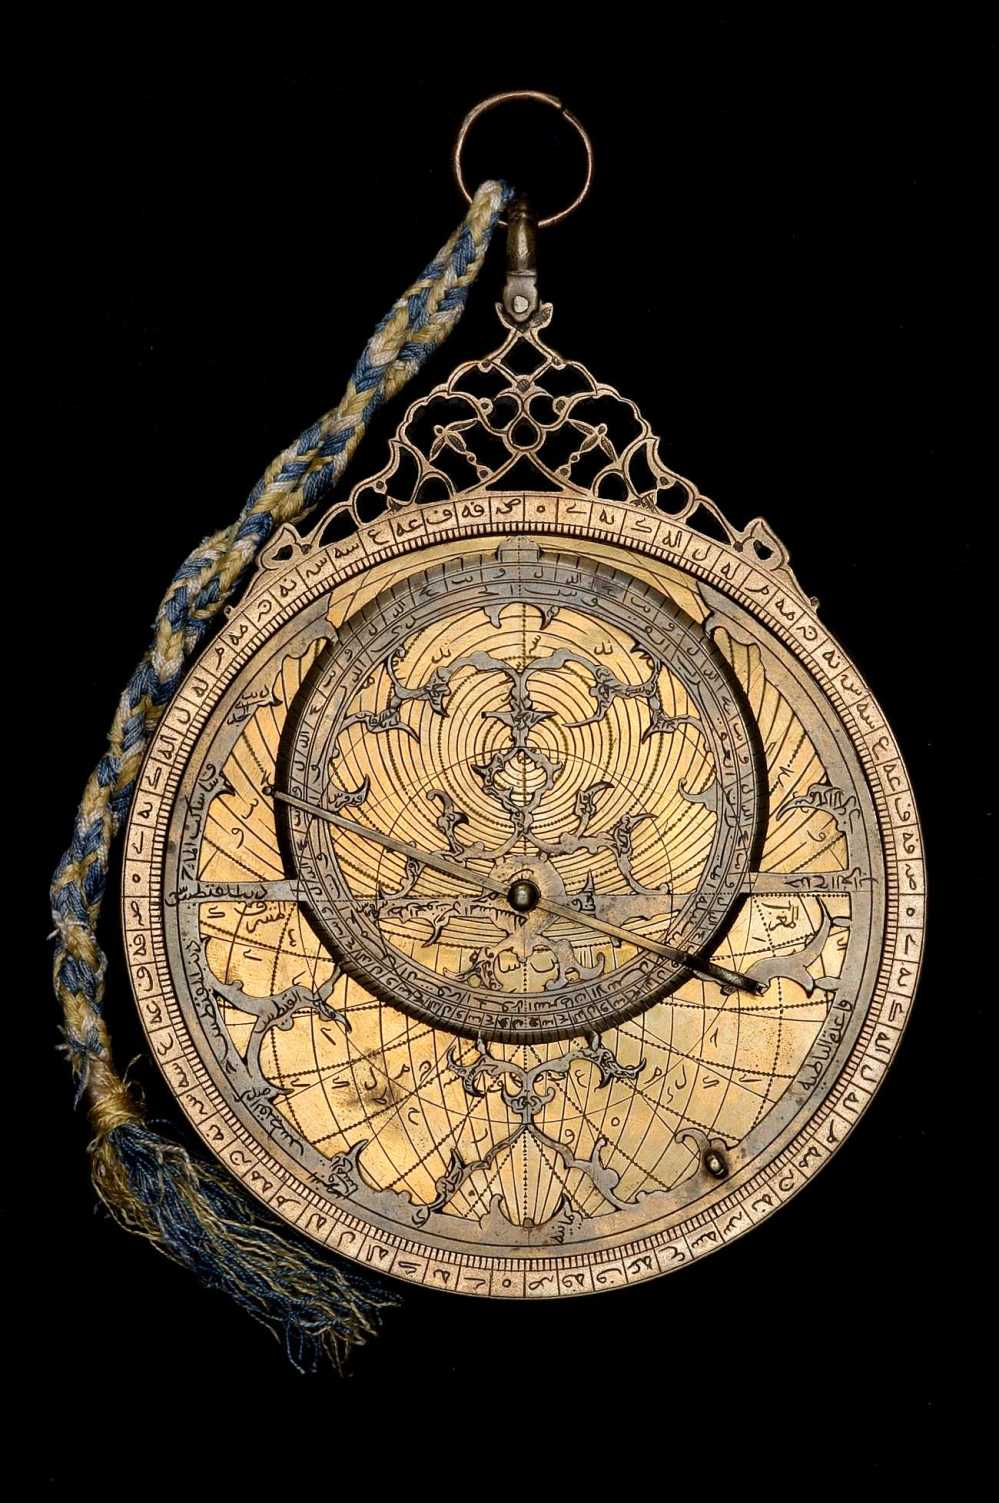 preview image for Astrolabe, by Muhammad Muqim, Lahore, 1641/2